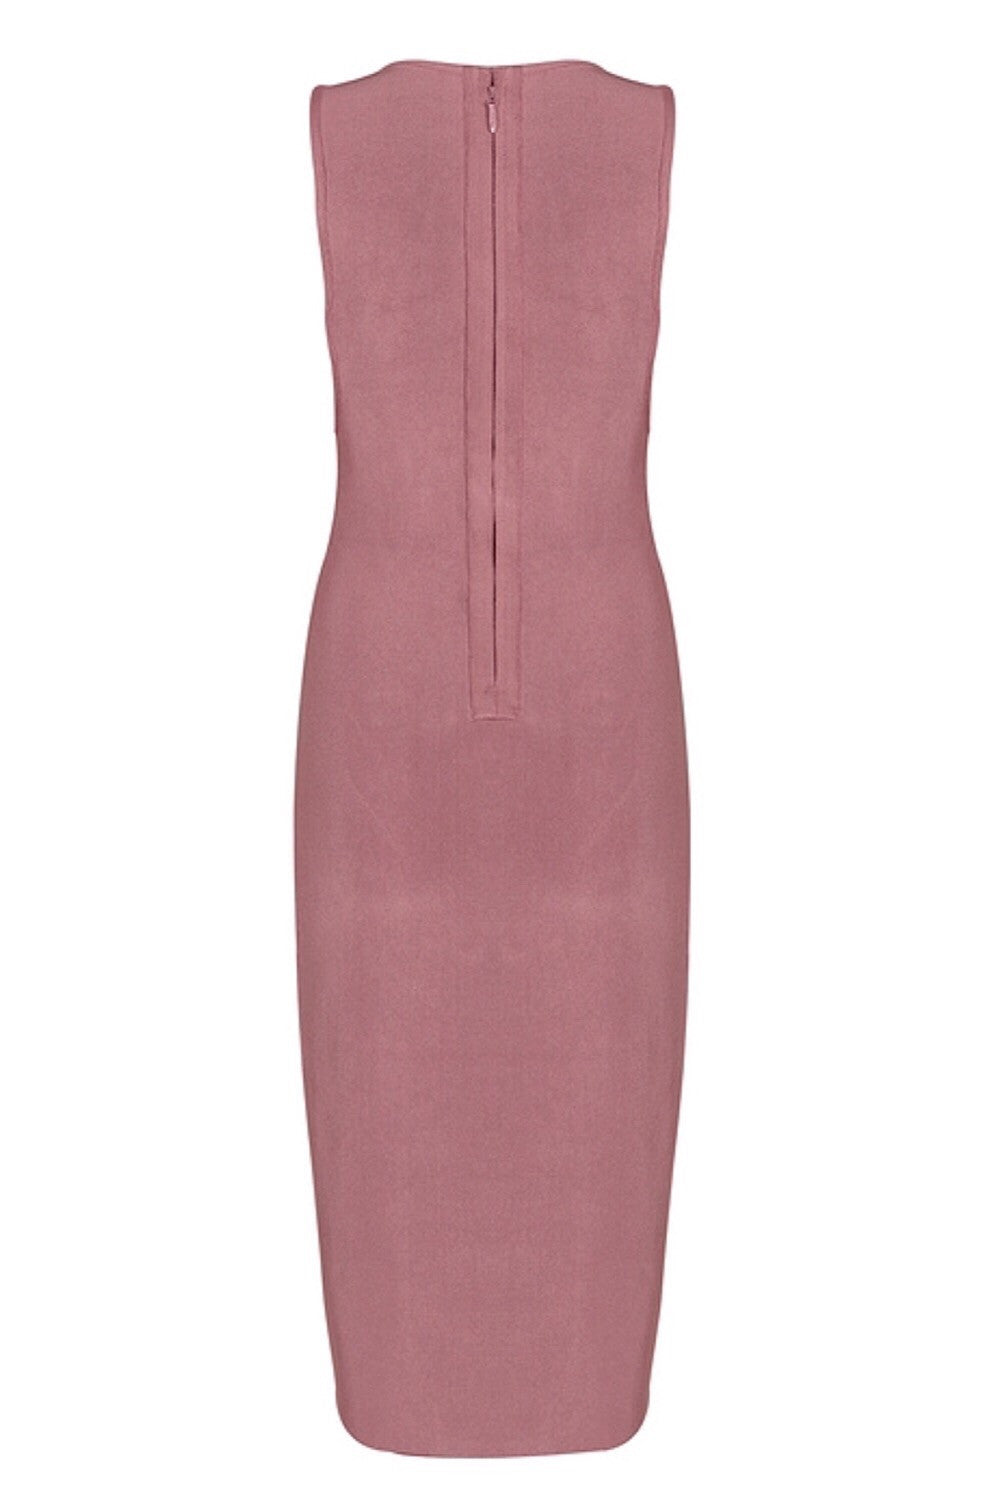 Estate Dark Blush Bandage Dress